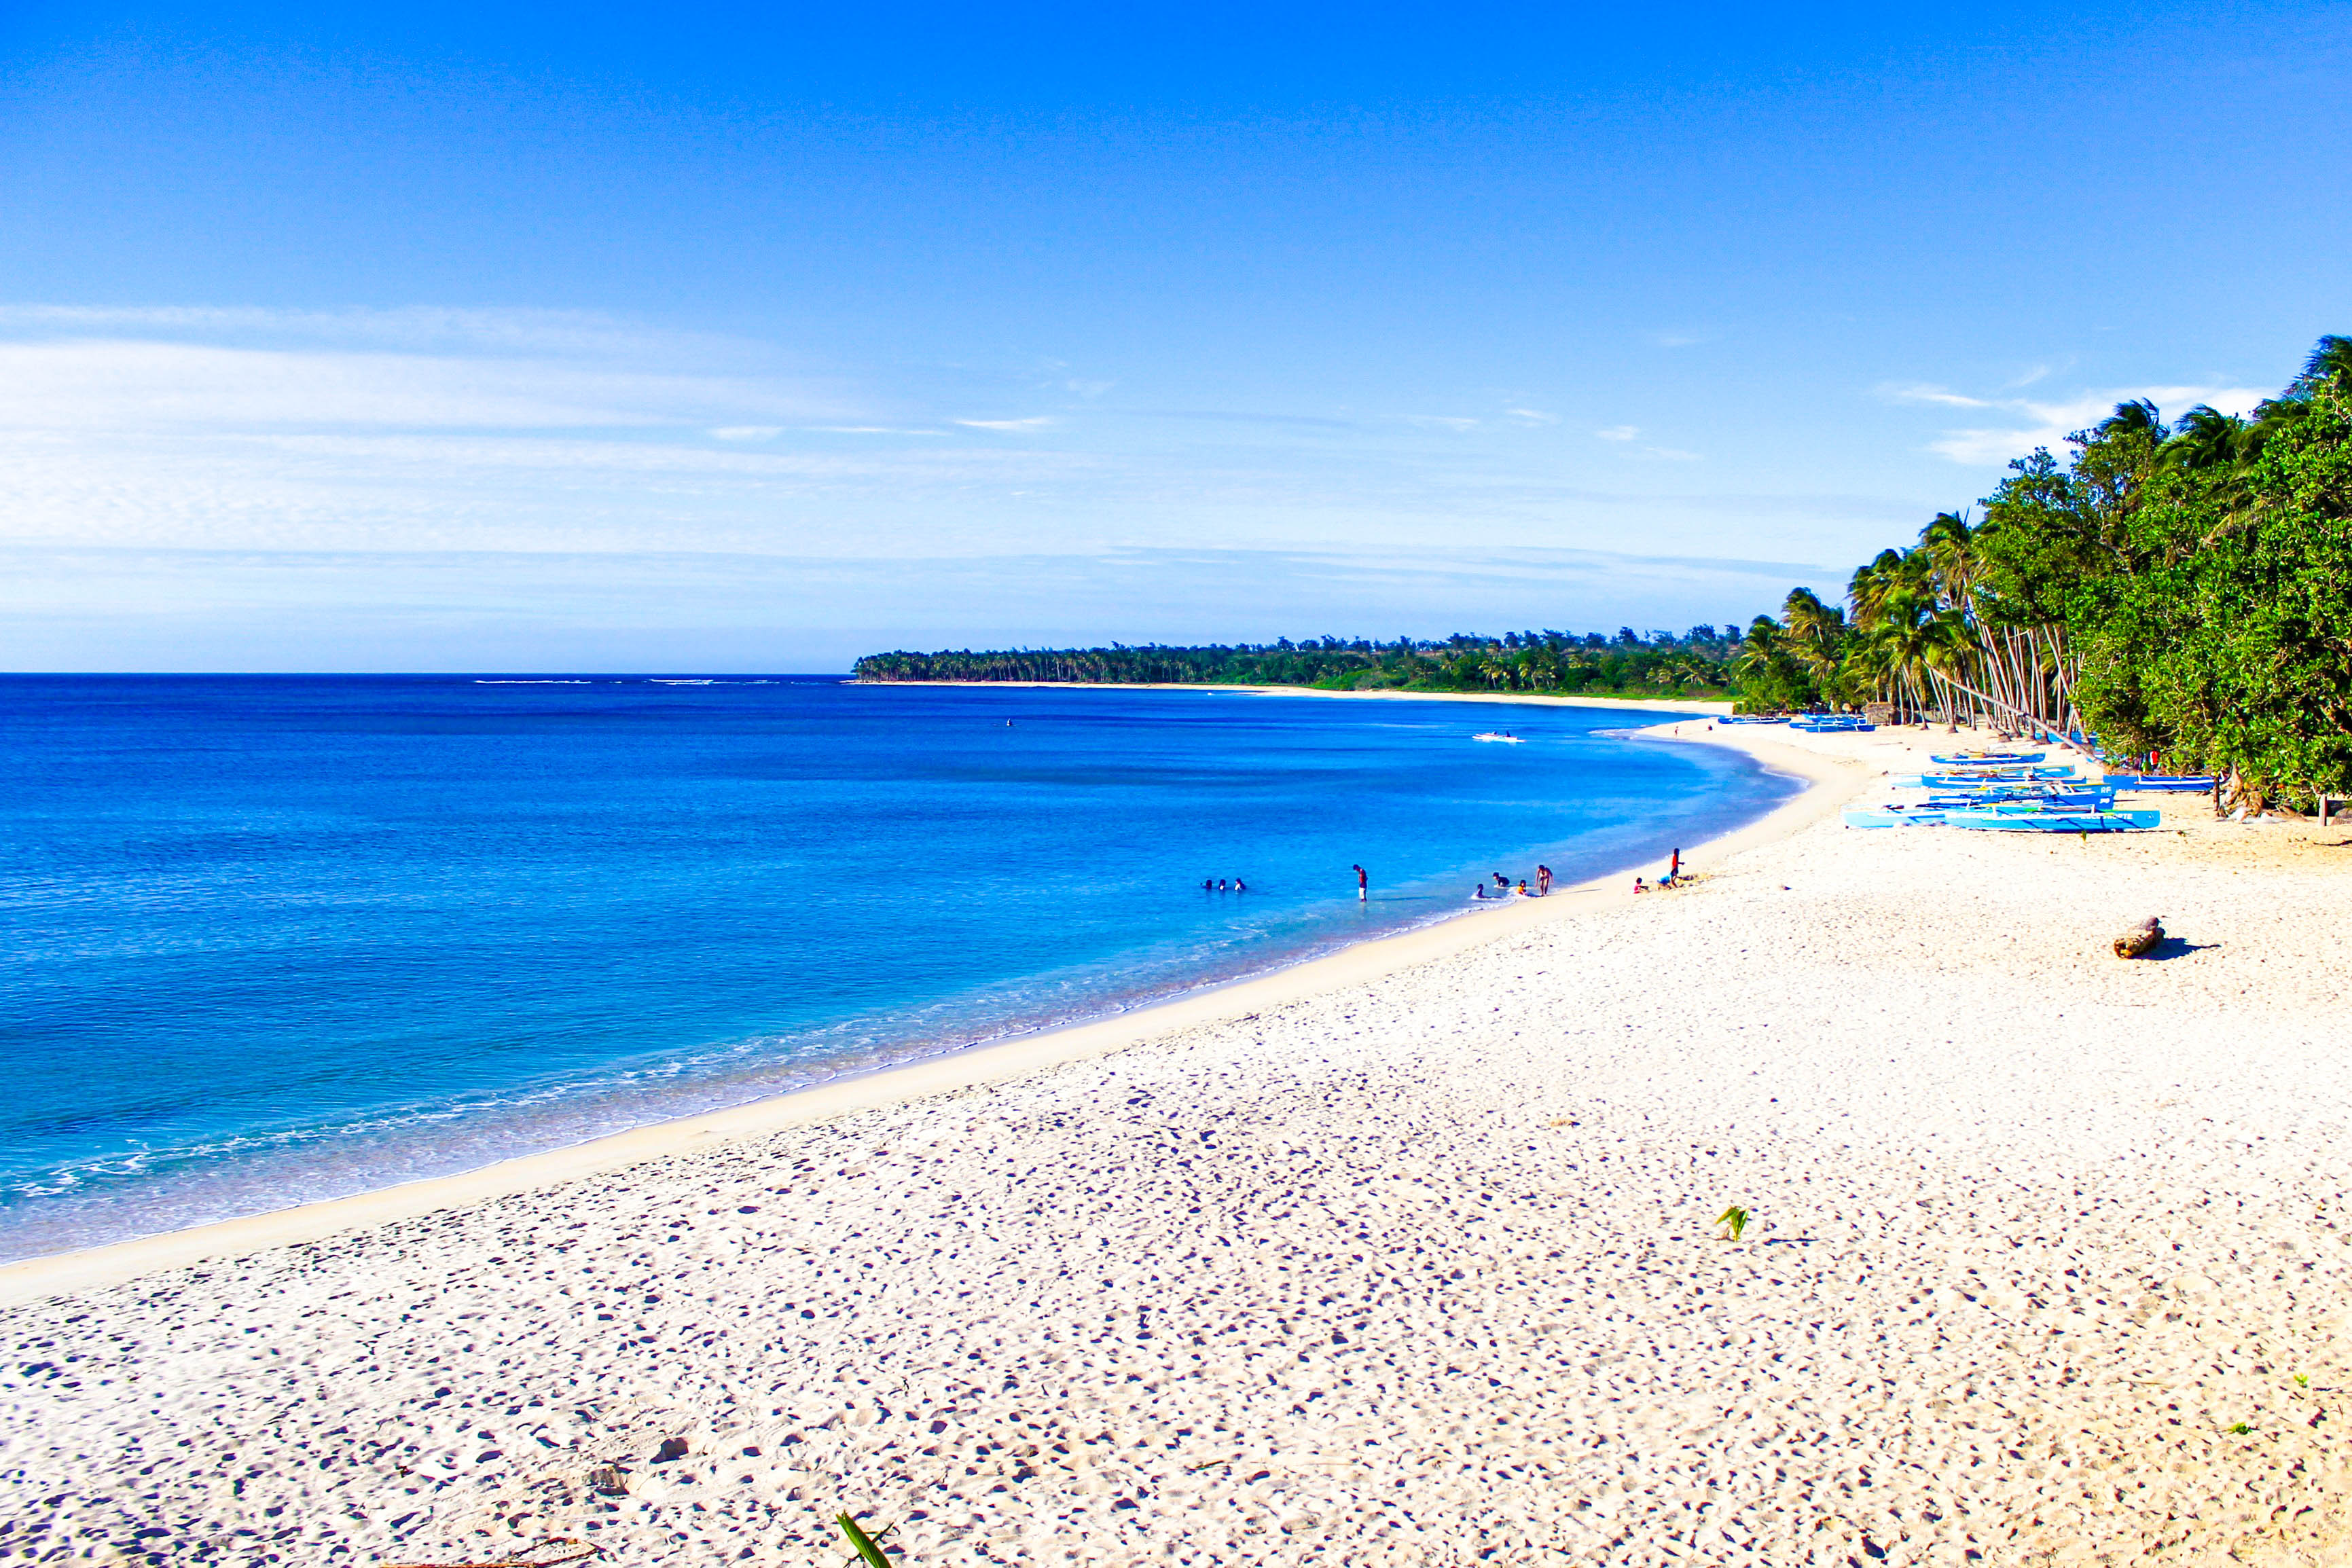 White sand beach and the blue sea in Pagudpud, Philippines